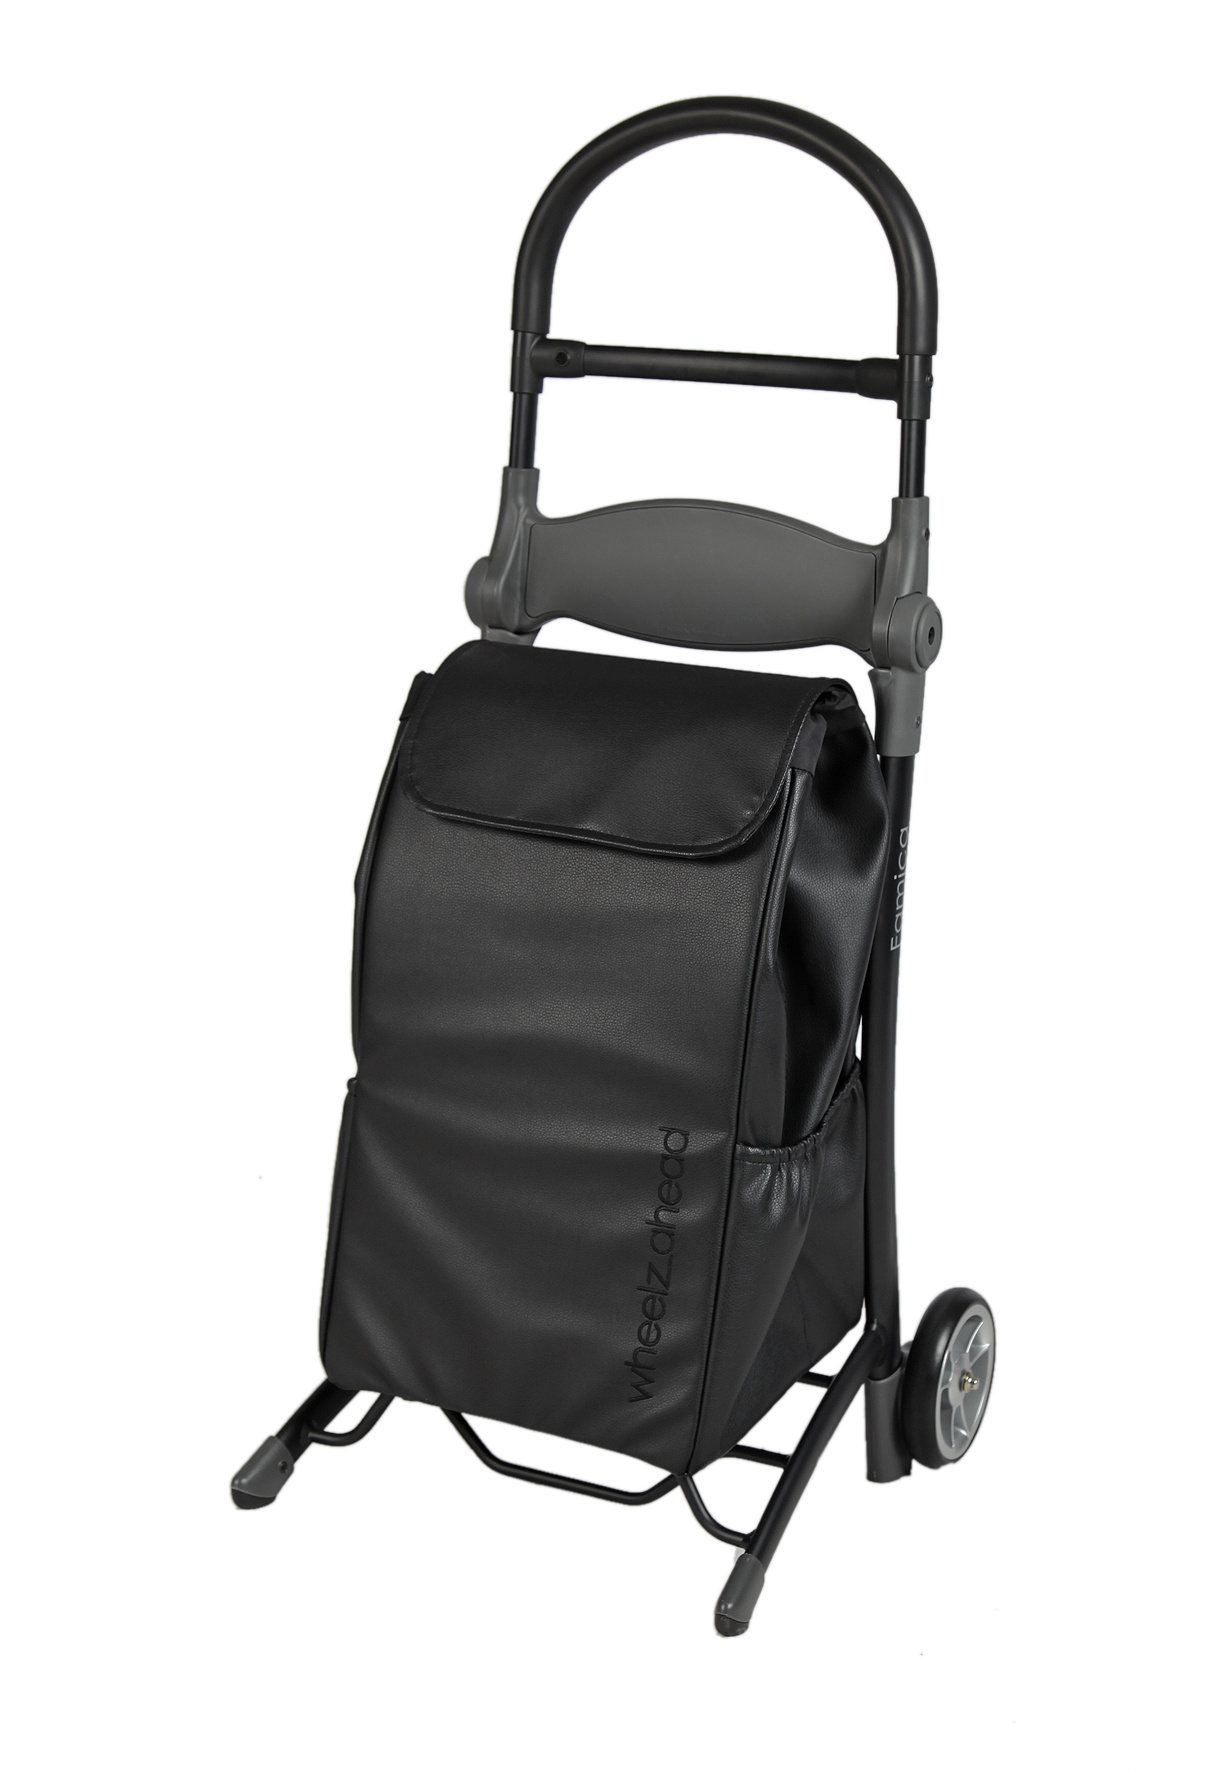 Wheelzahead RELAX&GO Shopping trolley with seat + Leather Bag